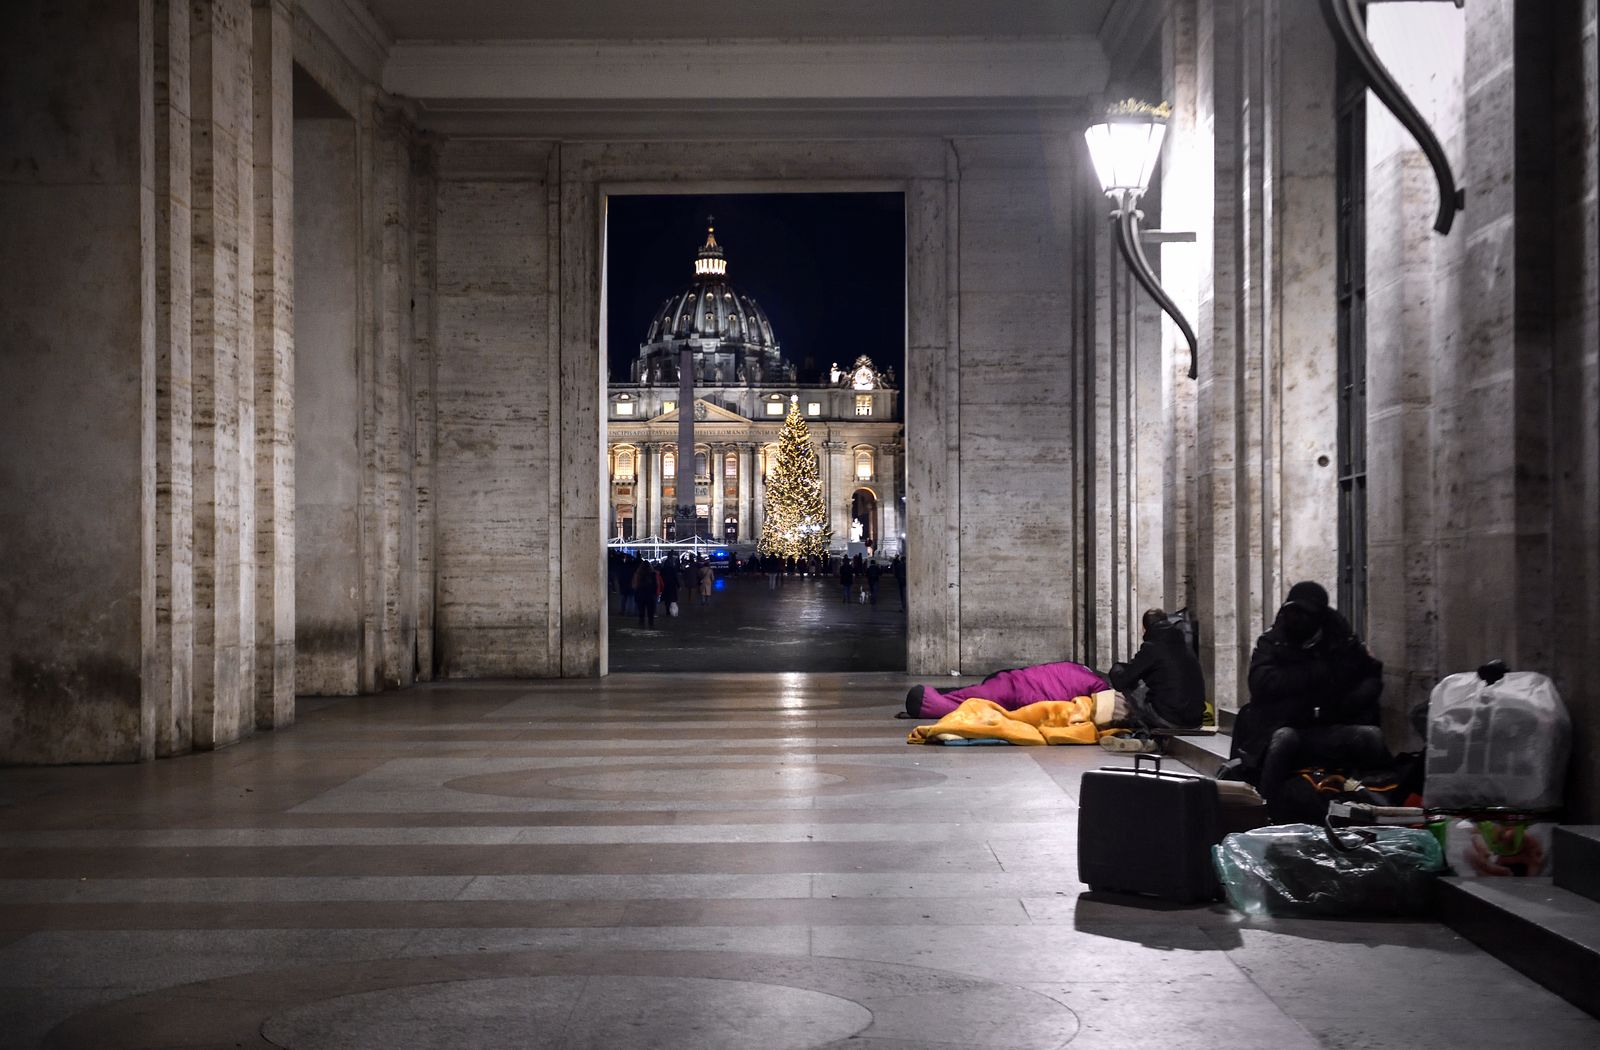 Homeless people sleeping near St. Peter's Square